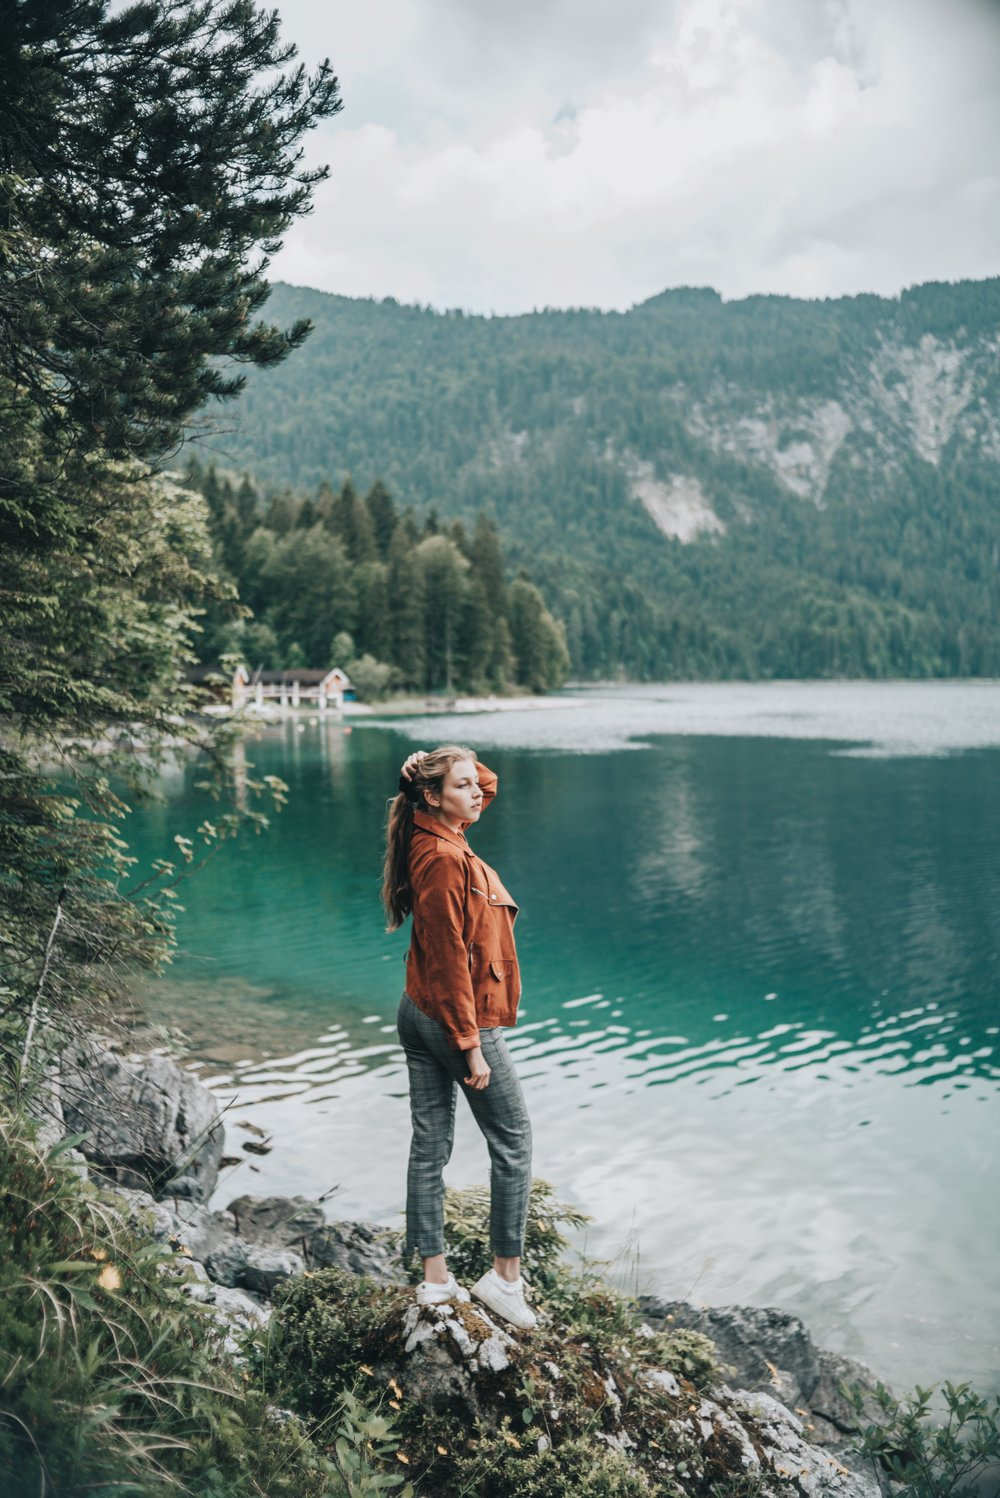 eibsee-bavaria-photography-travel-guide-gretacaptures